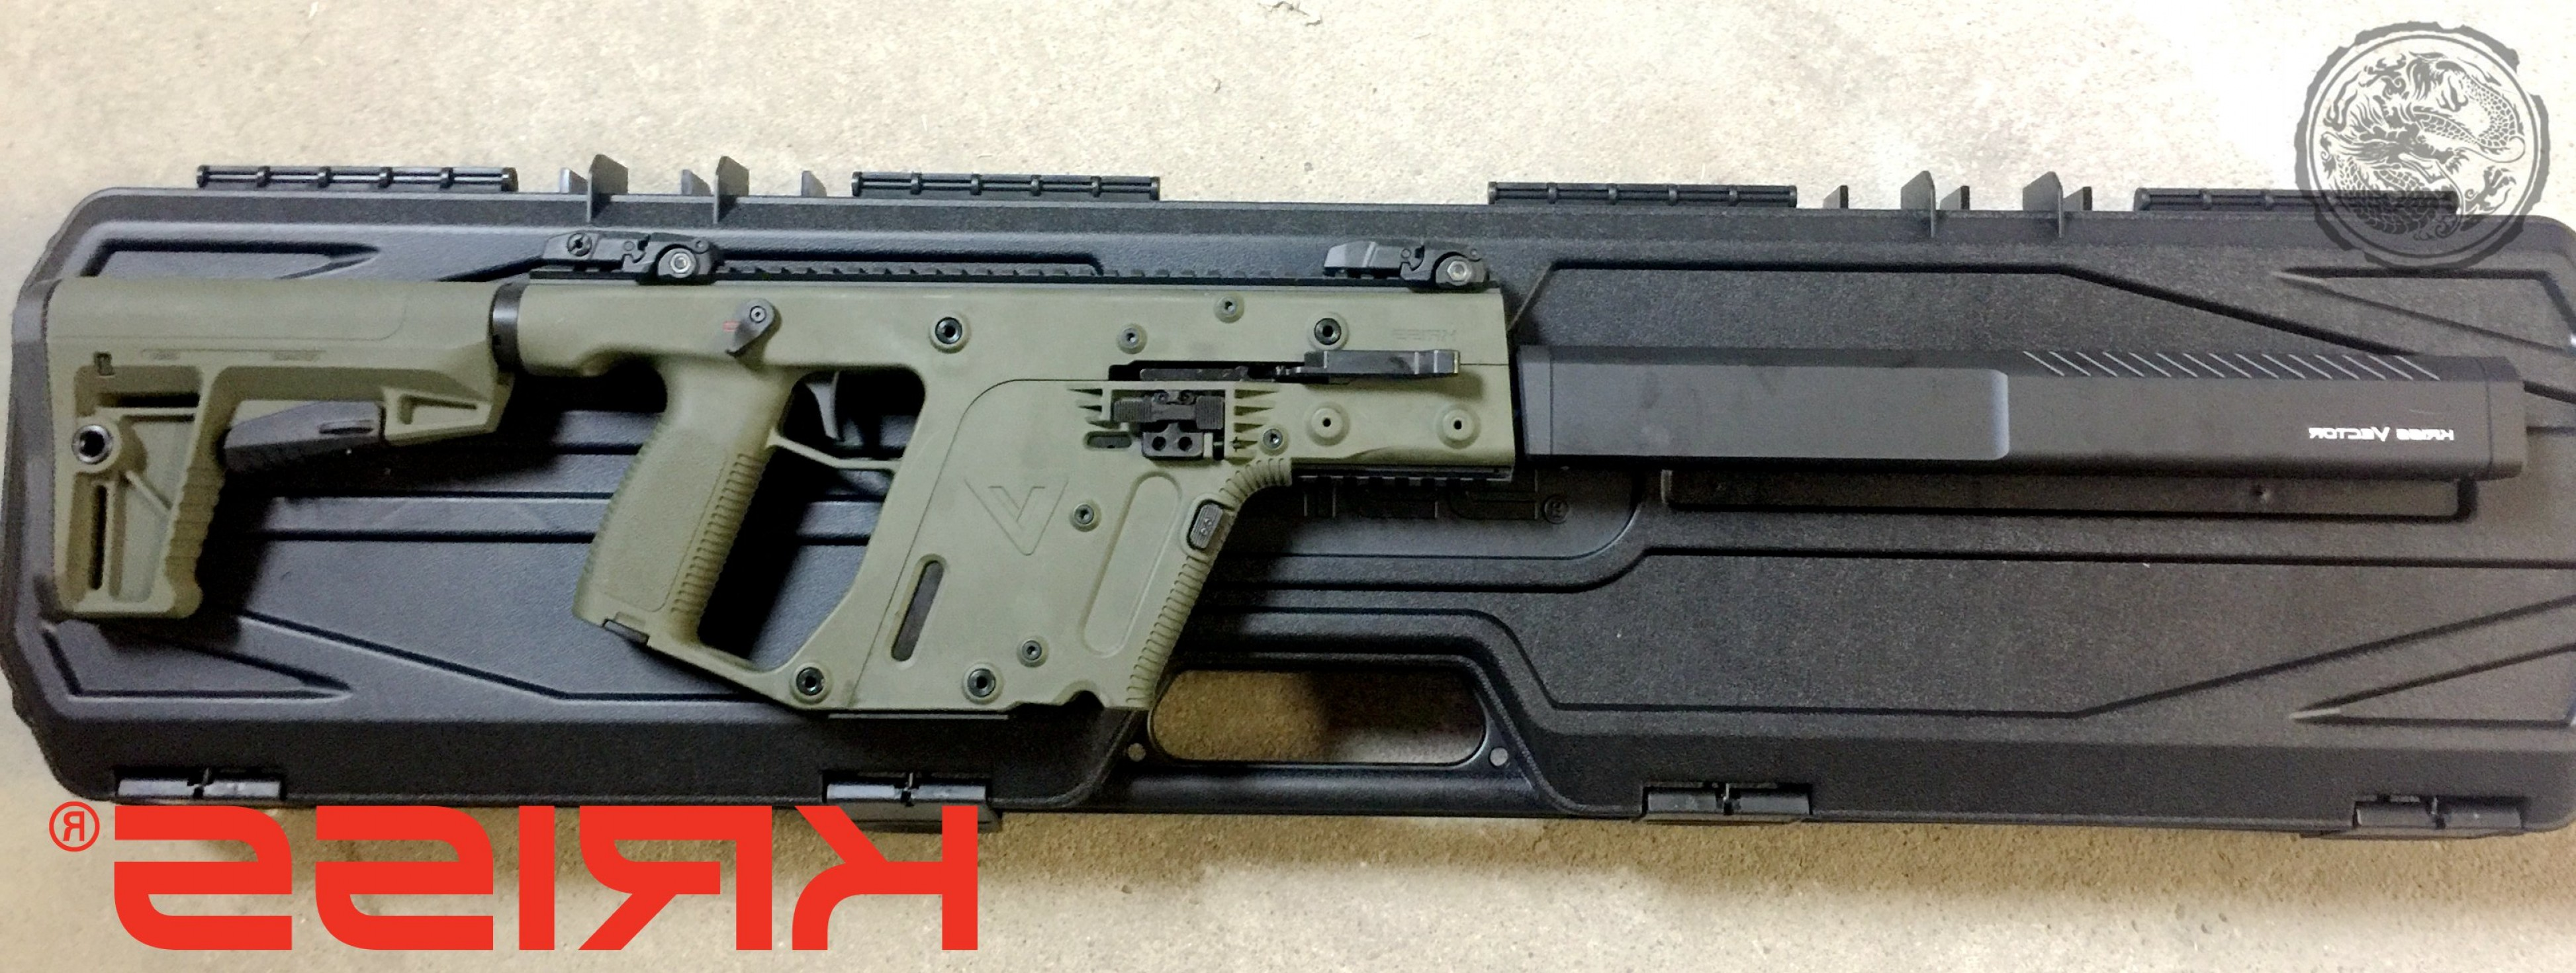 Vector Kriss Scope: Kriss Vector Gen Ii Crb Enhanced Semi Auto Rifle Barrel Od Green Mm